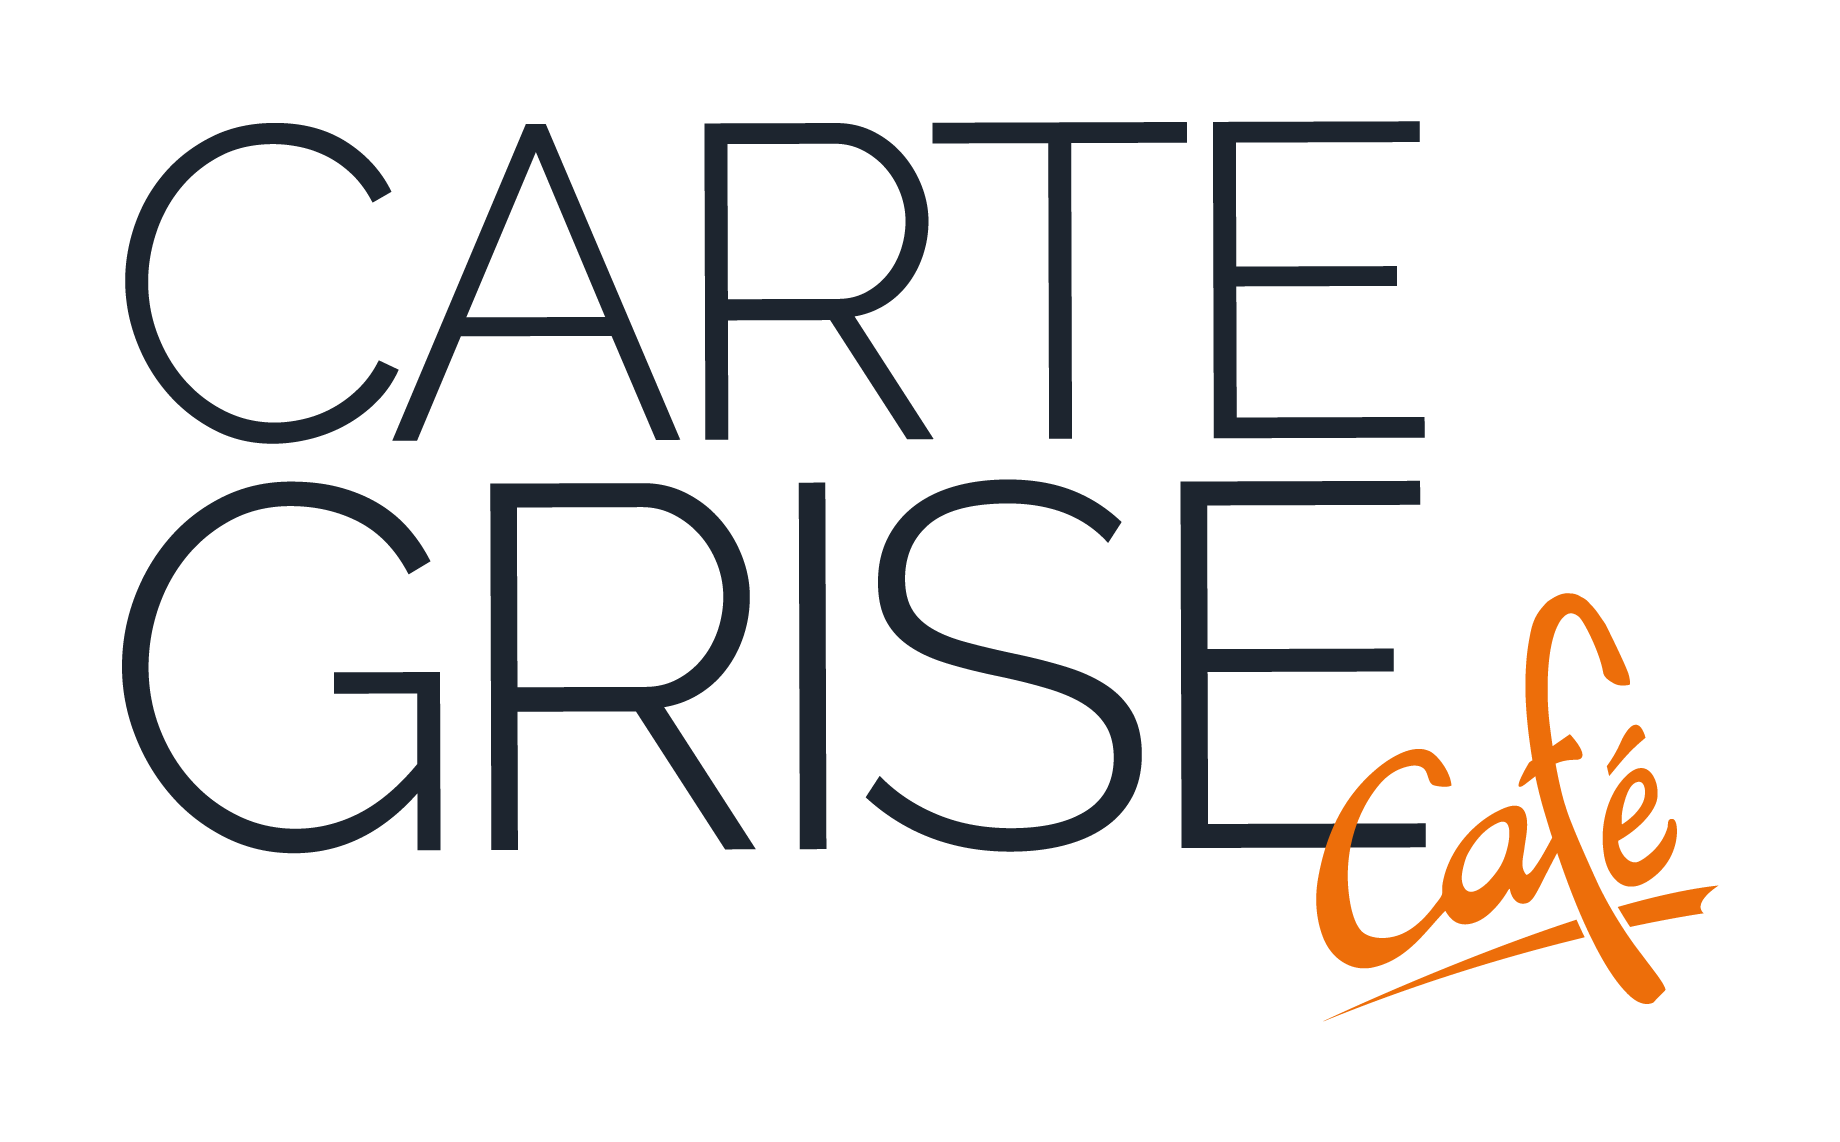 ouvrir une agence carte grise cafe